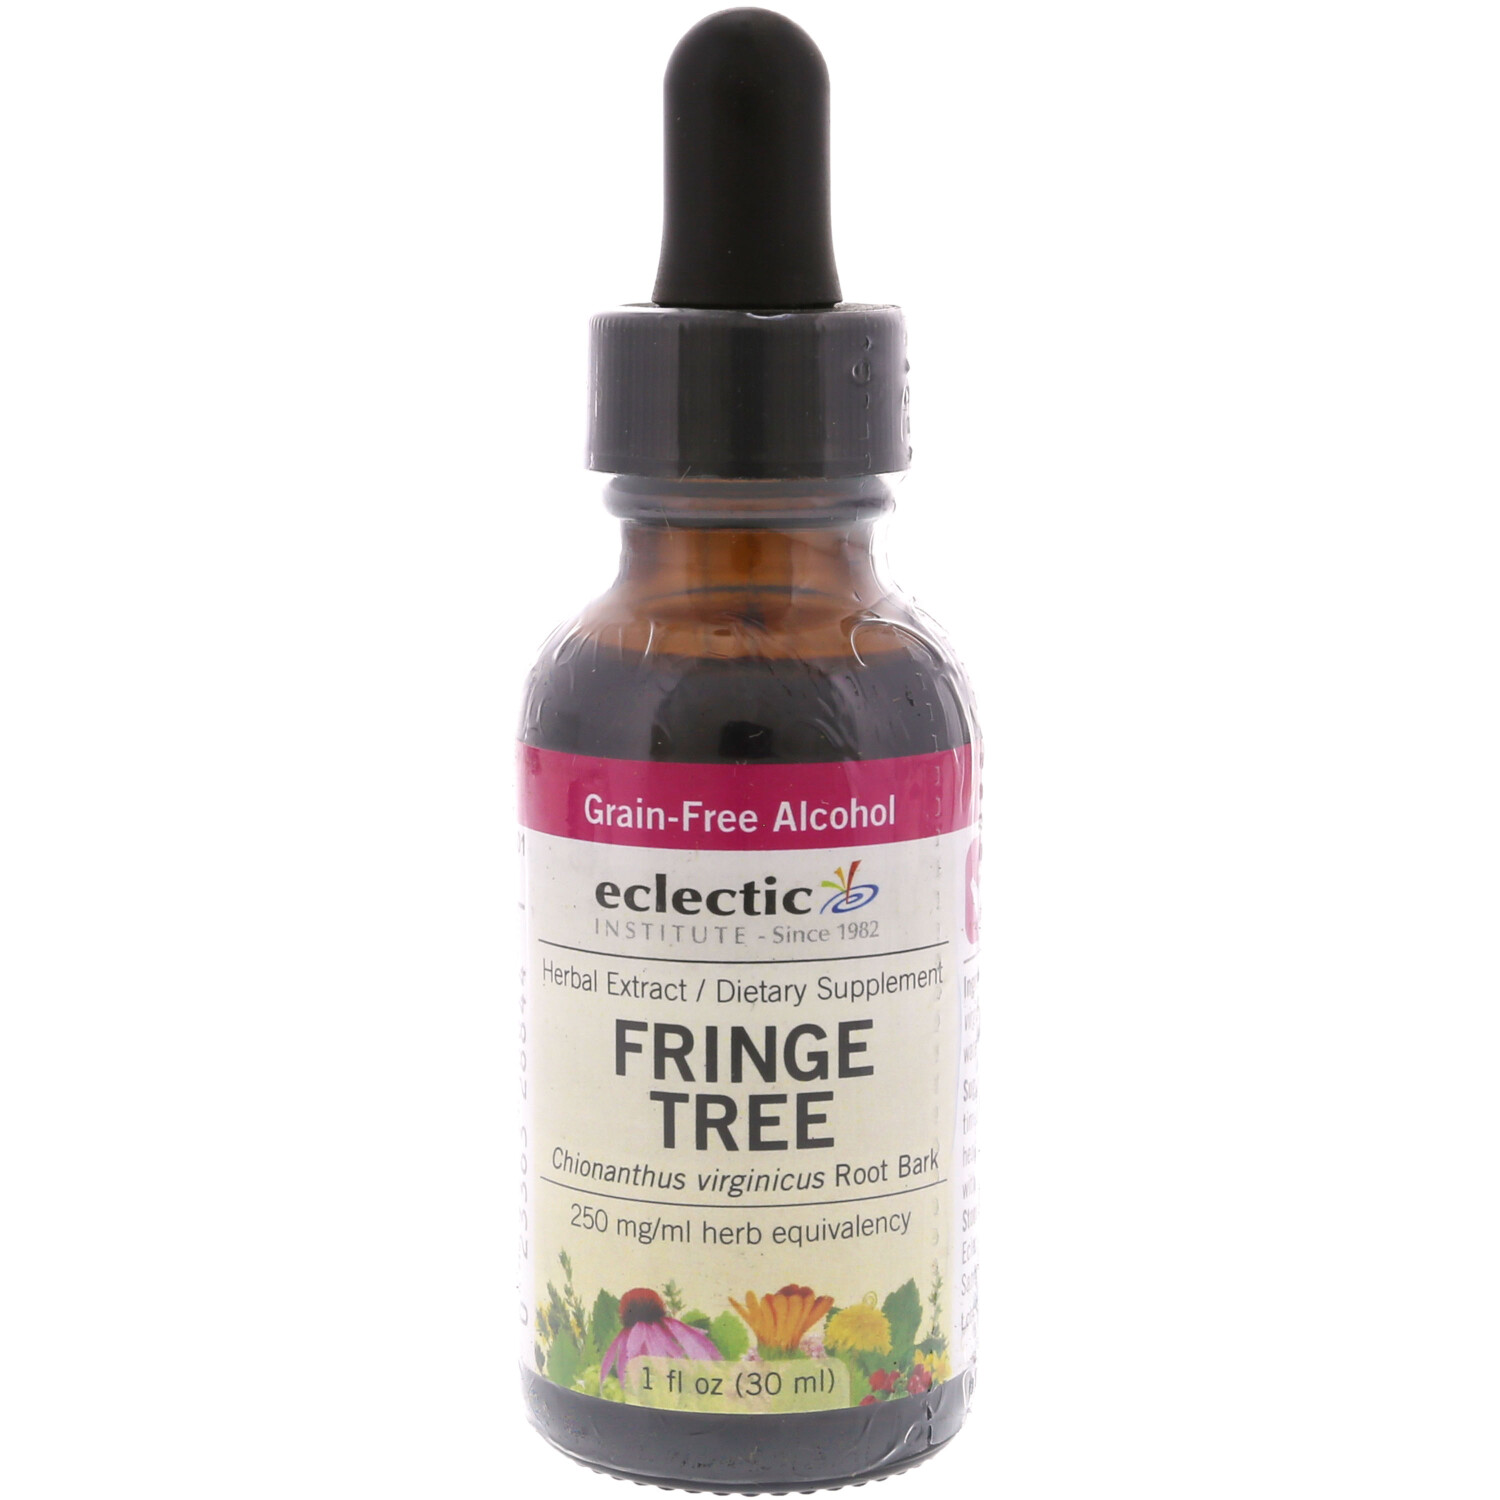 Eclectic Institute Herbal Extract Fringe Tree Dietary Supplement - 1 oz